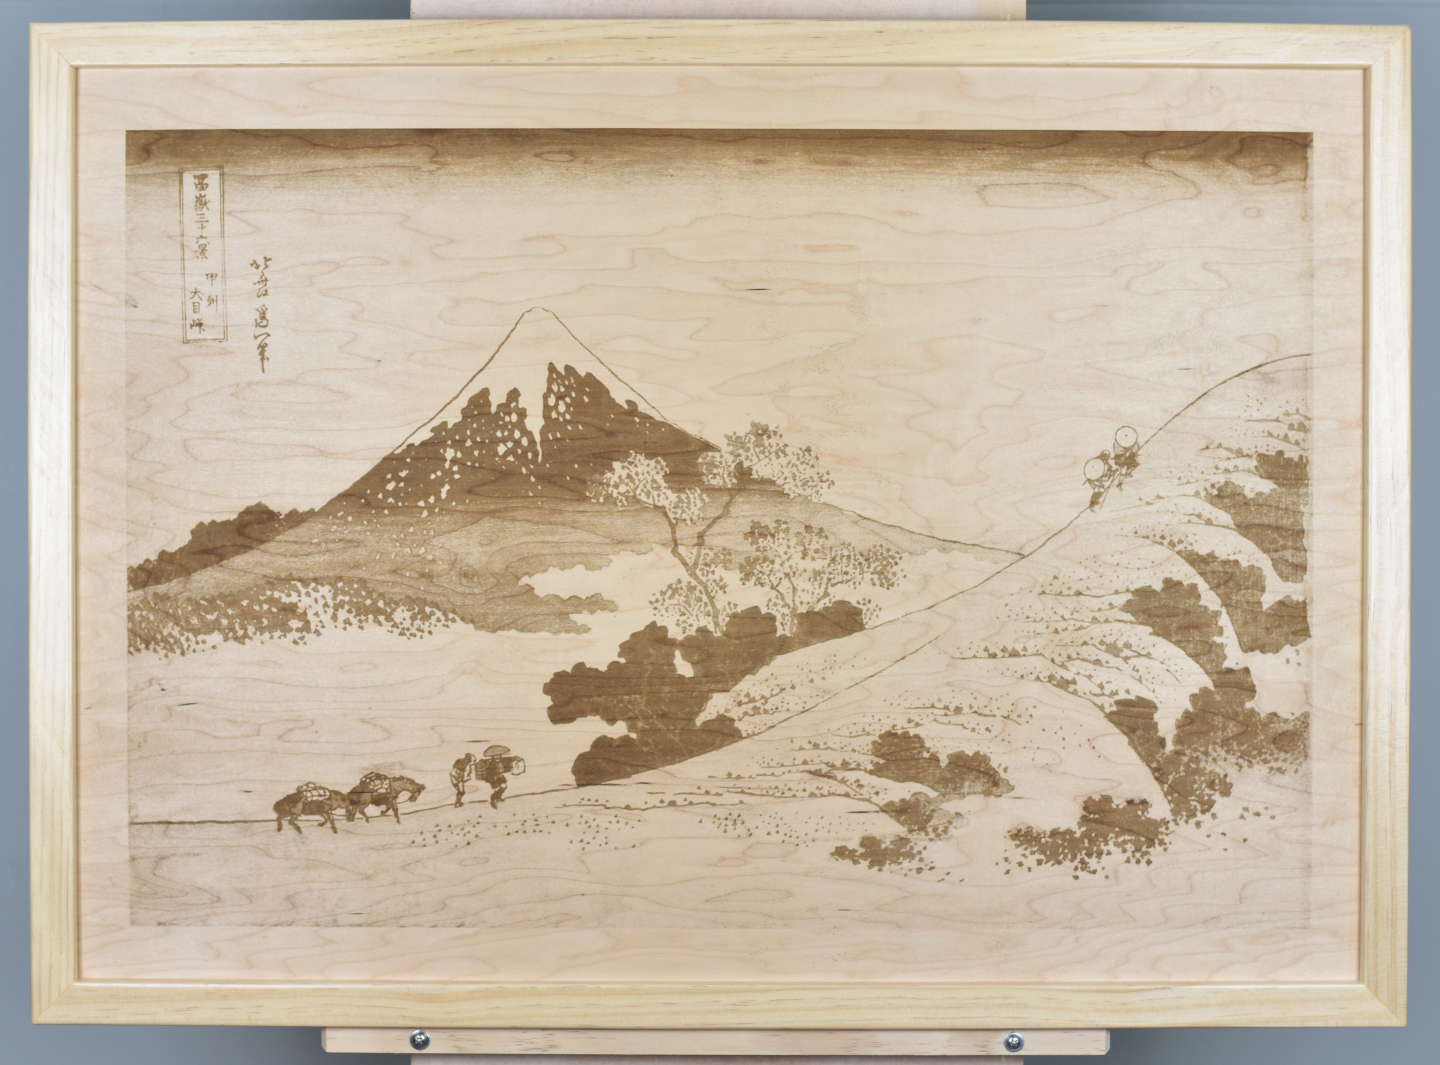 A wood burning (digital pyrograph) of Inume Pass in Kai Province by Katsushika Hokusai in the series Thirty-six Views of Mount Fuji.